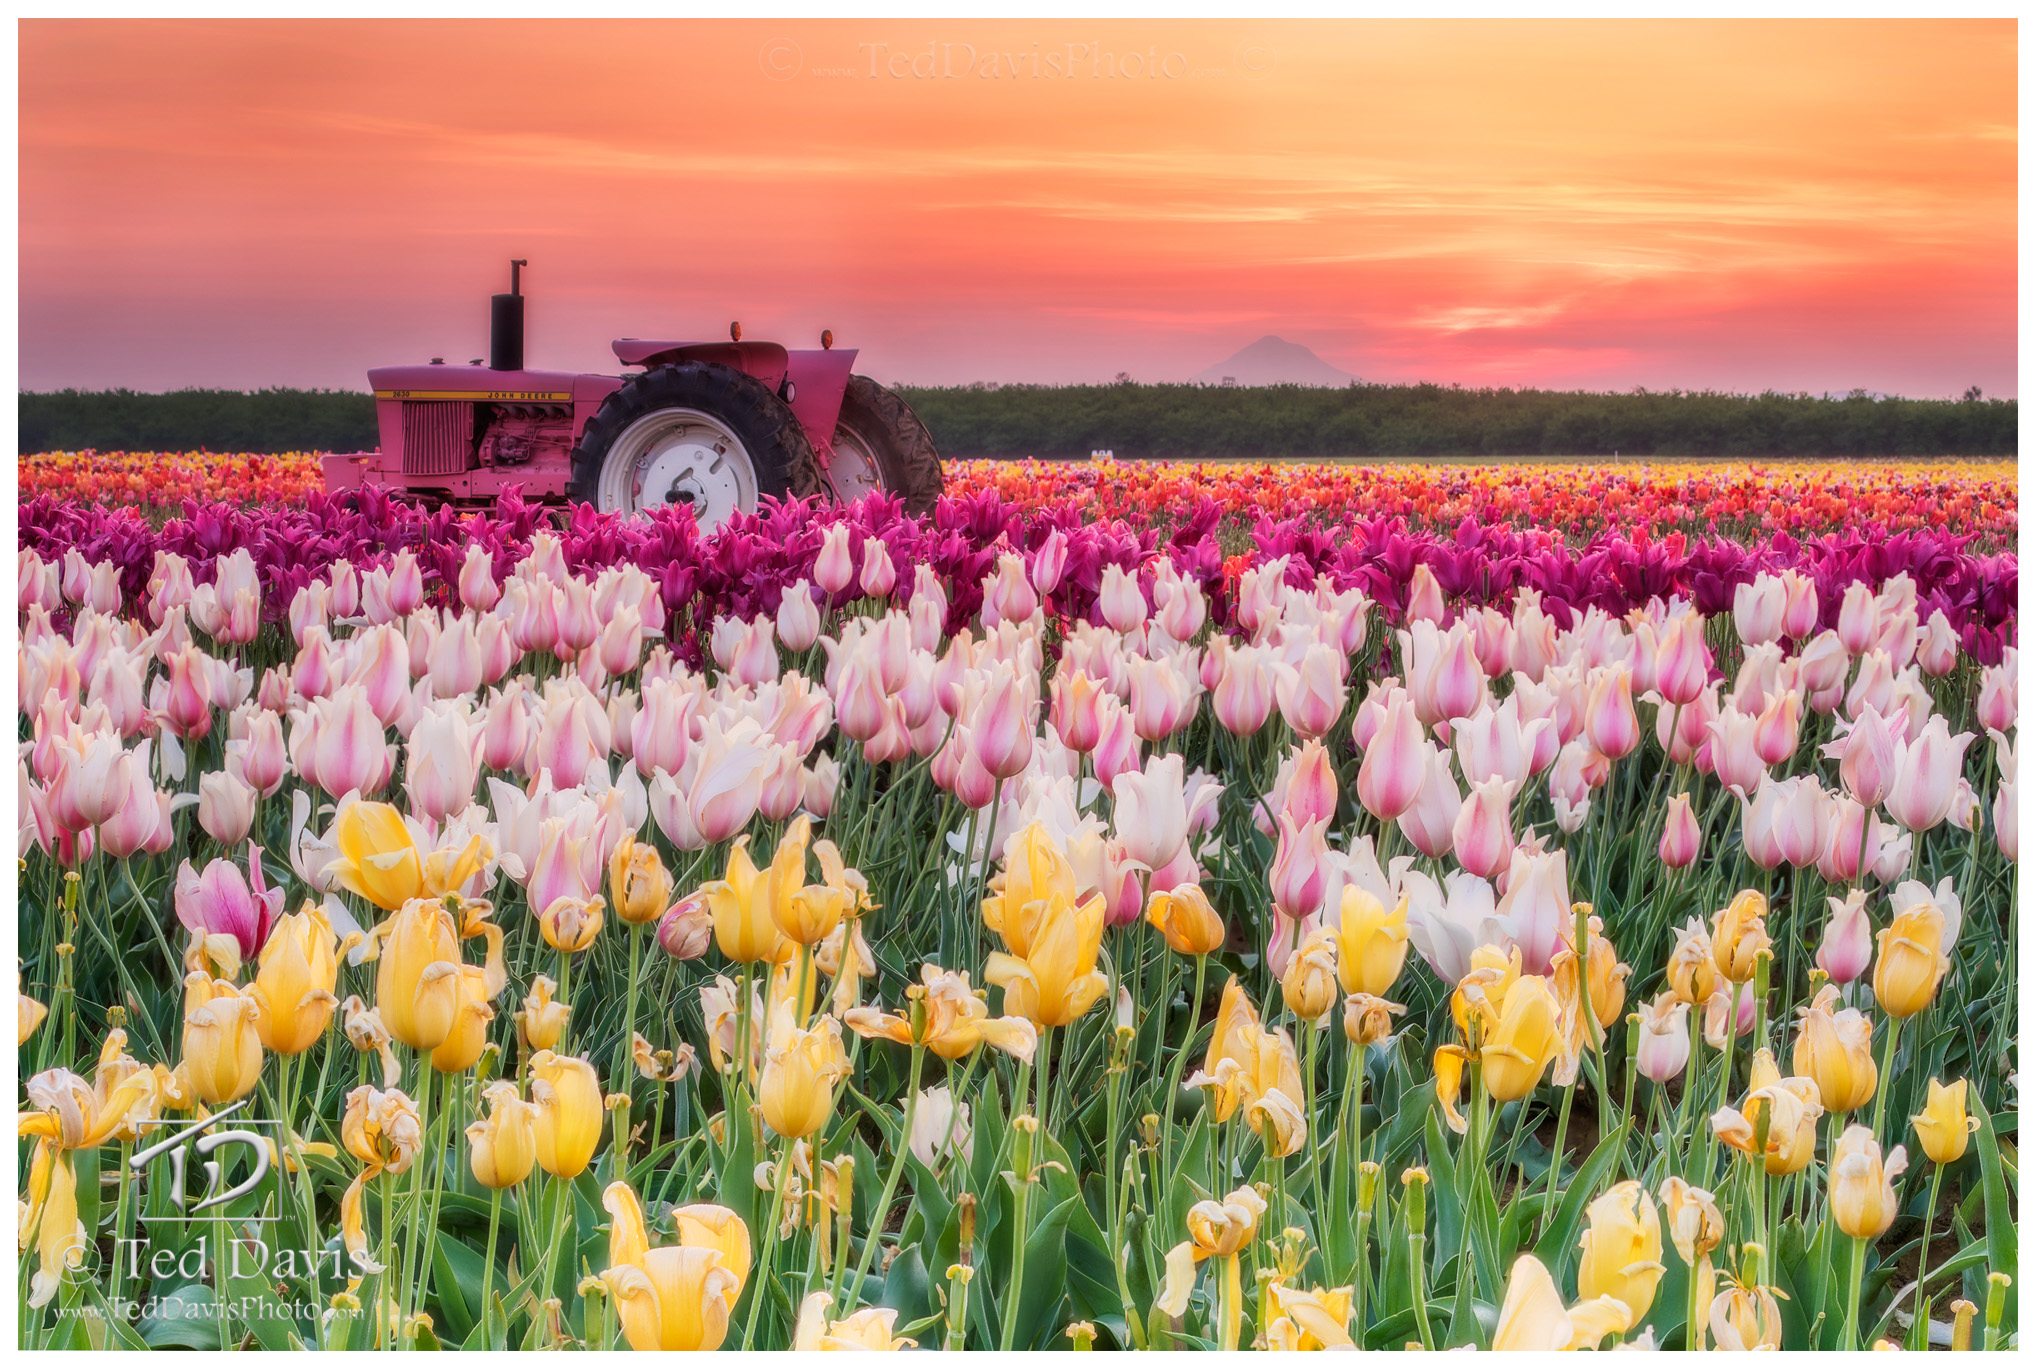 photograph, art, landscape, travel, sunrise, sunset, mountain, field, flowers, tractor, farmers, valley, Willamette, Oregon, trail, beautiful, claim, land, settle, focus, hood, photo